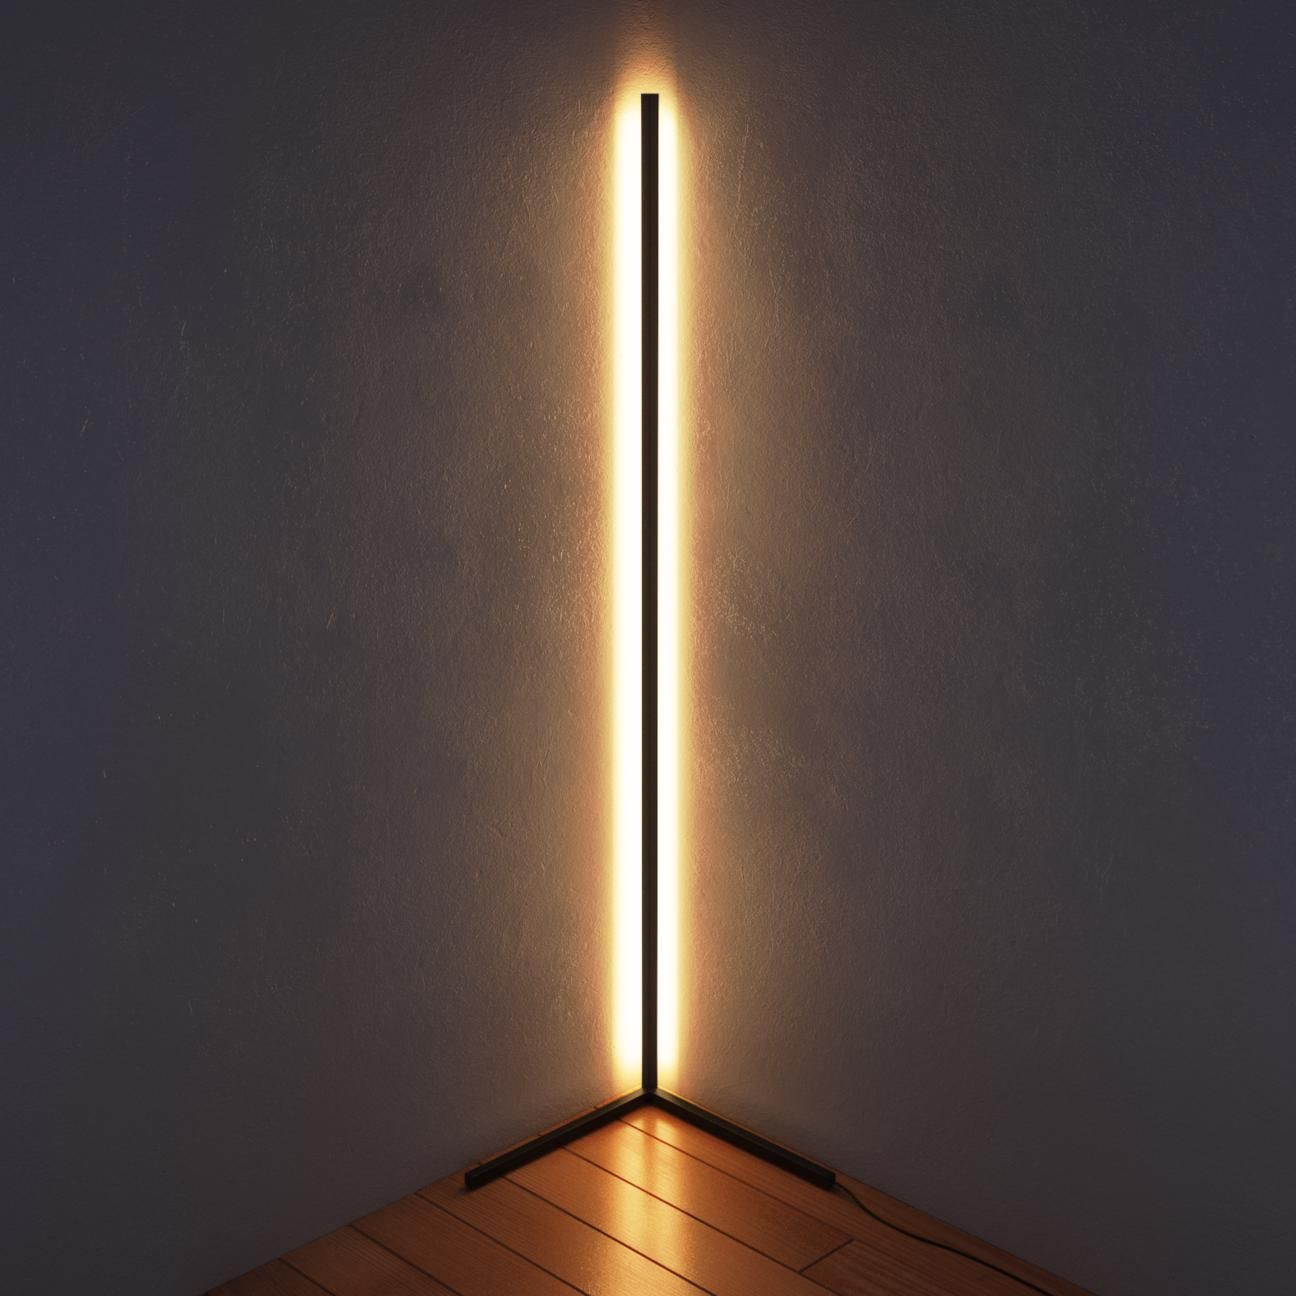 The Lubois : a floor lamp with a clear LED light strip